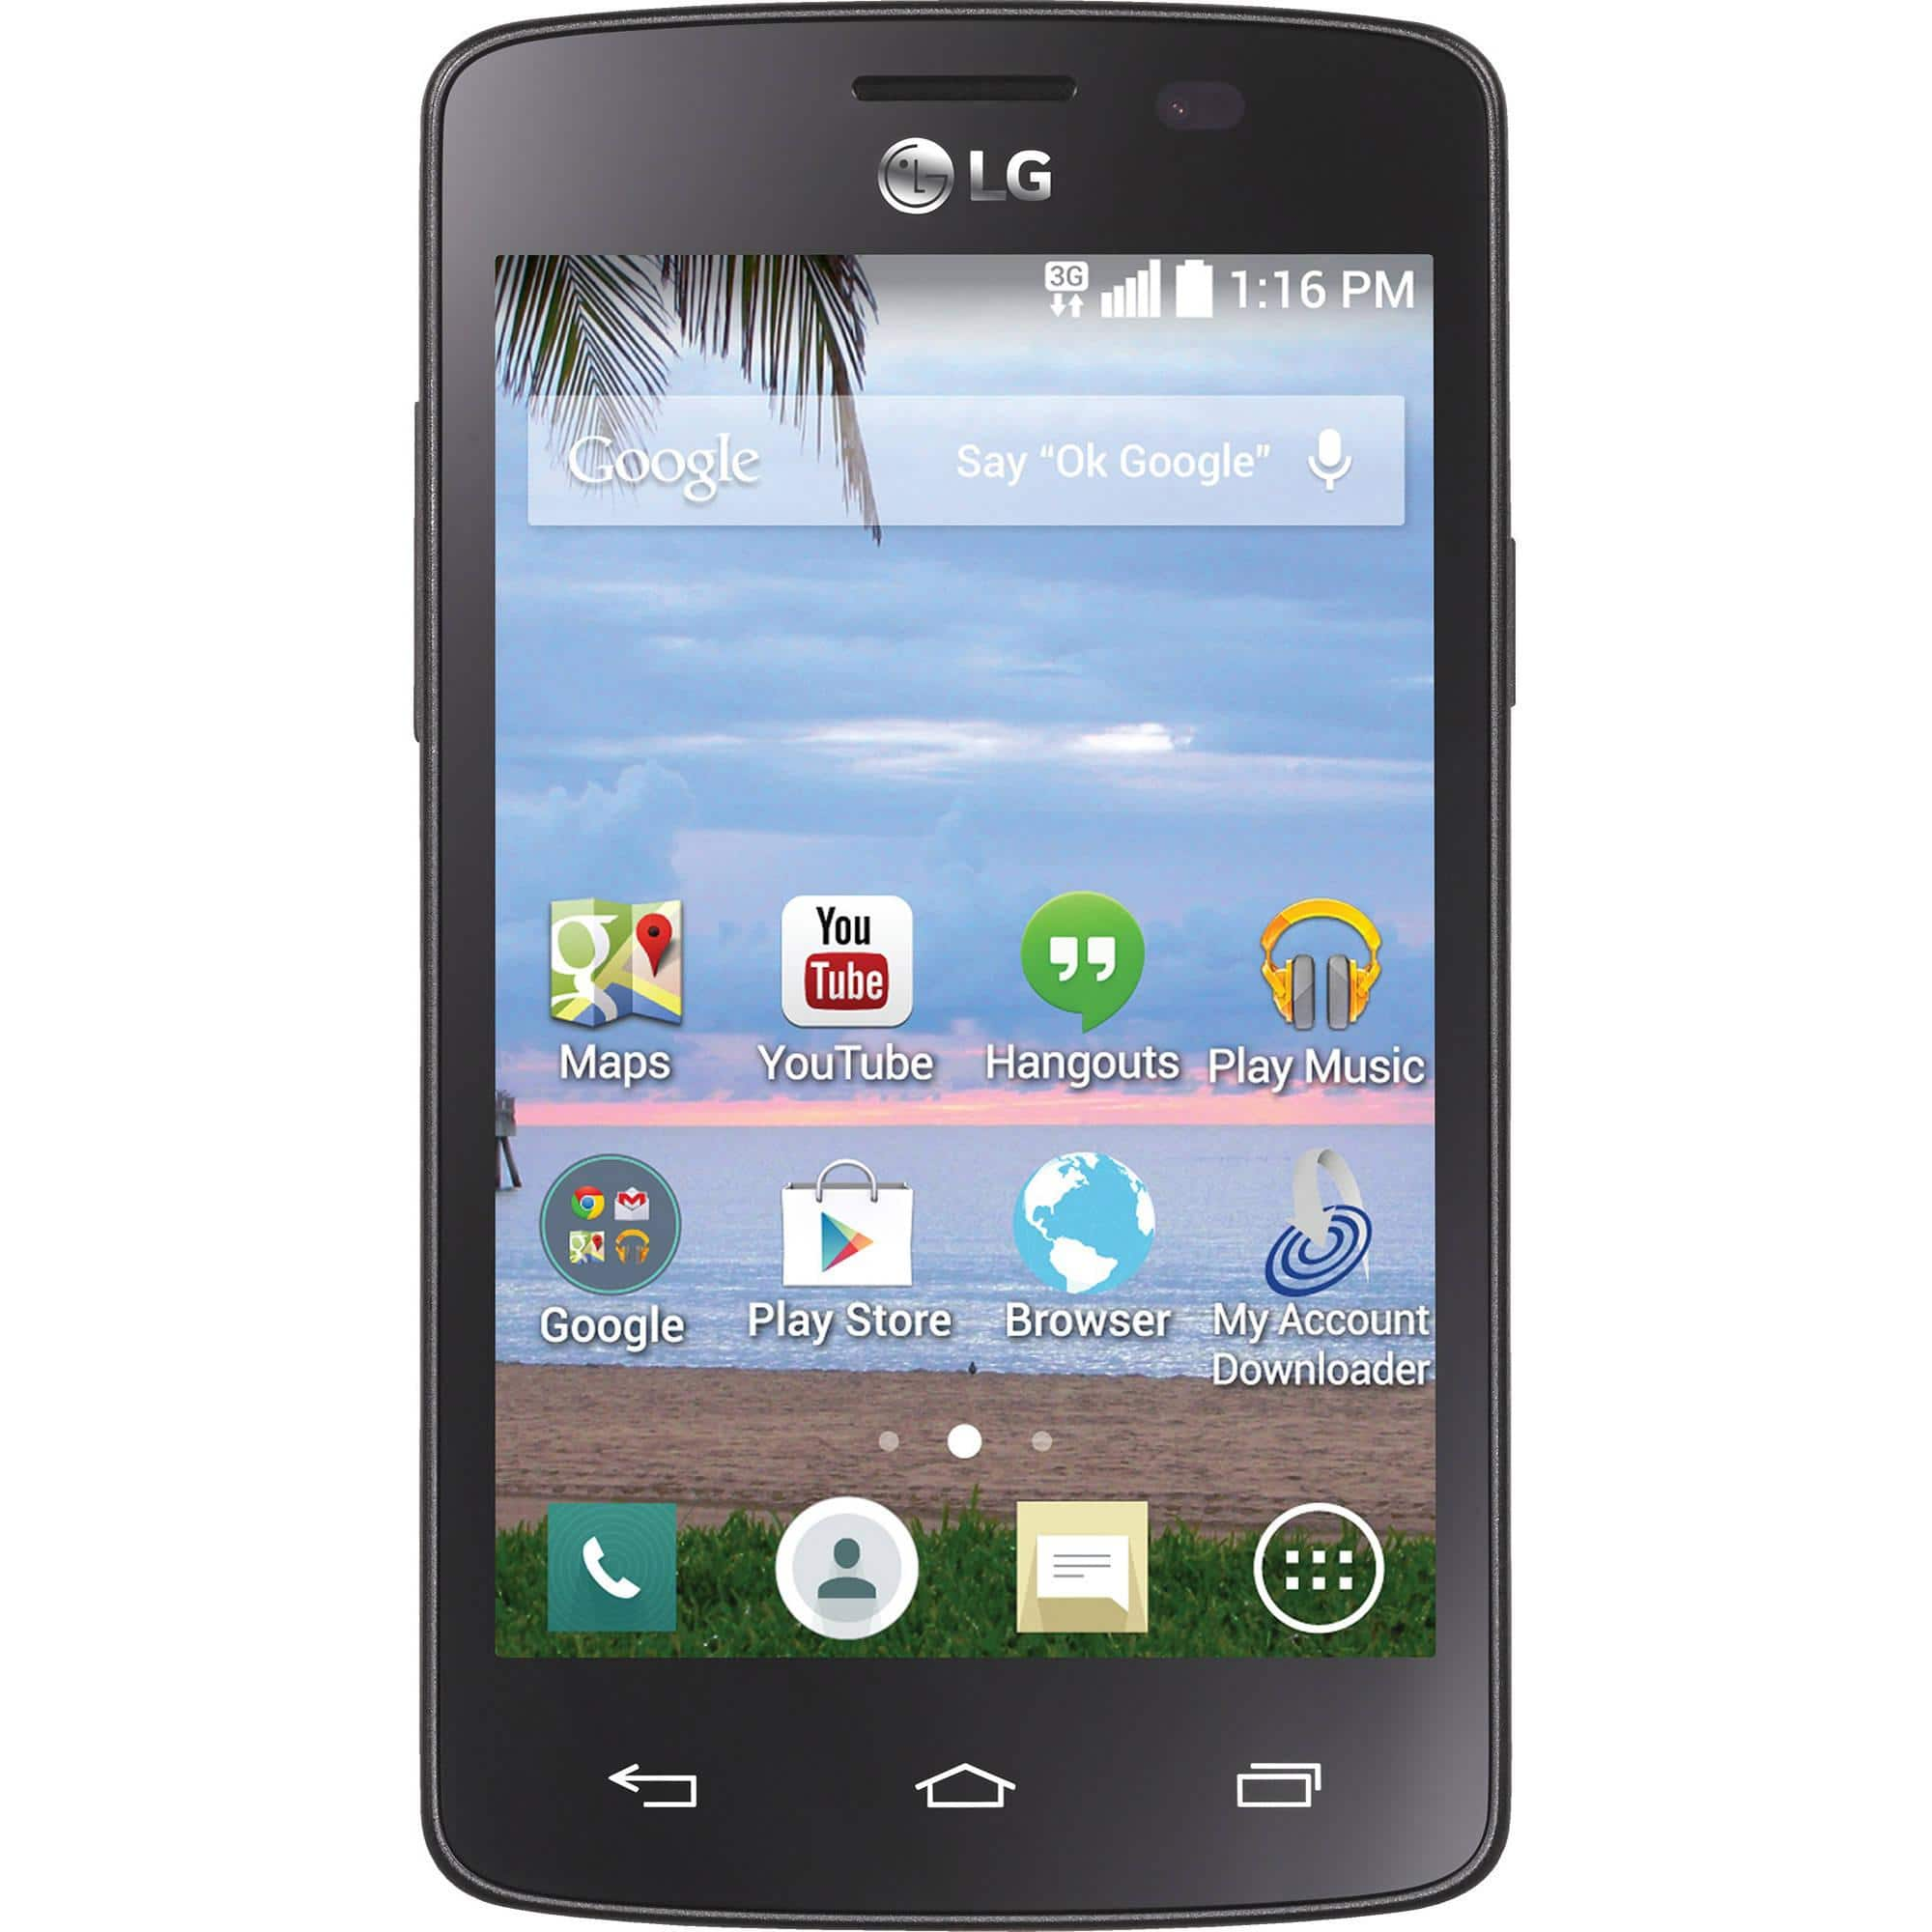 LG Lucky smartphone at Wal-Mart for $10